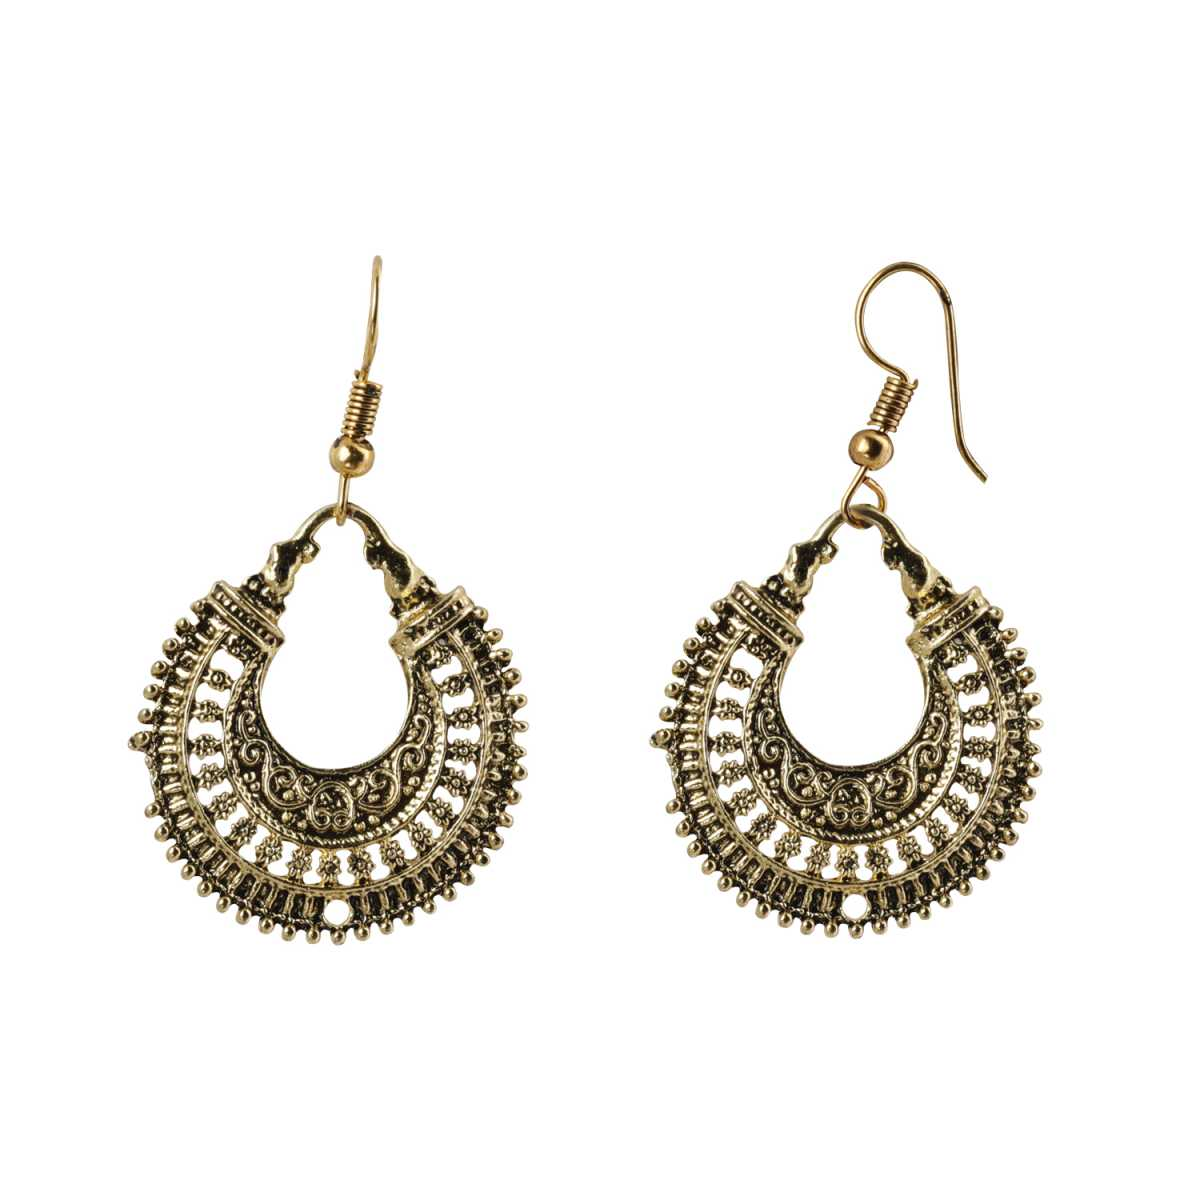 Silver Shine Trendy Sharp Edge Golden Chandbali  Earrings for Women